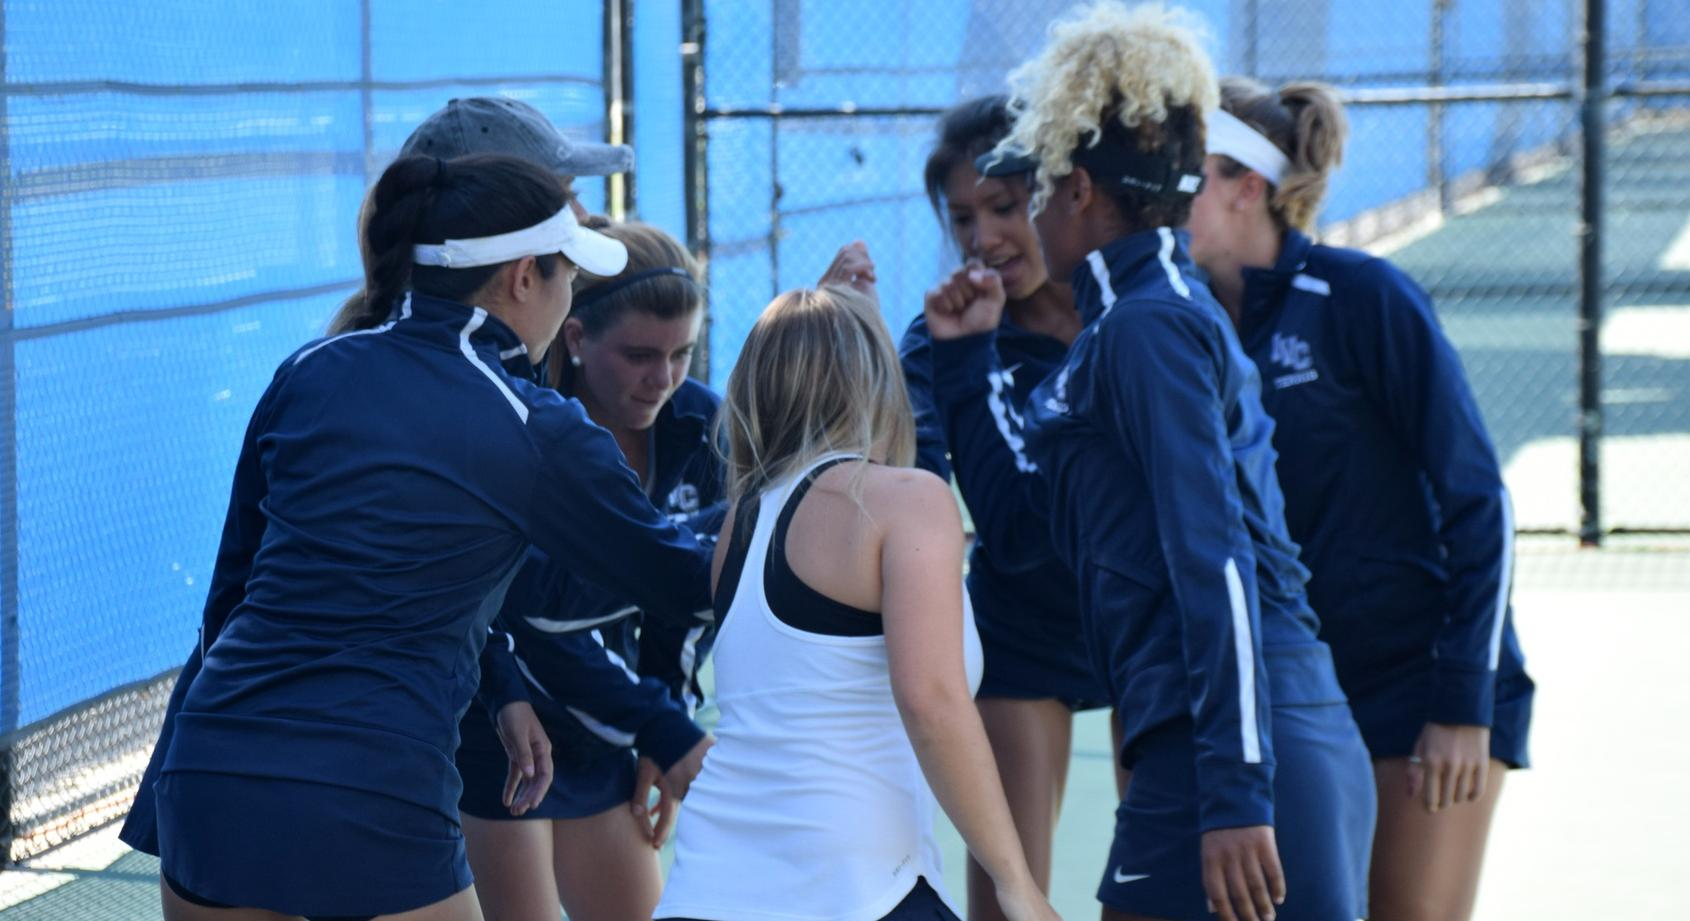 Women's tennis team's special run ends in regional semifinals